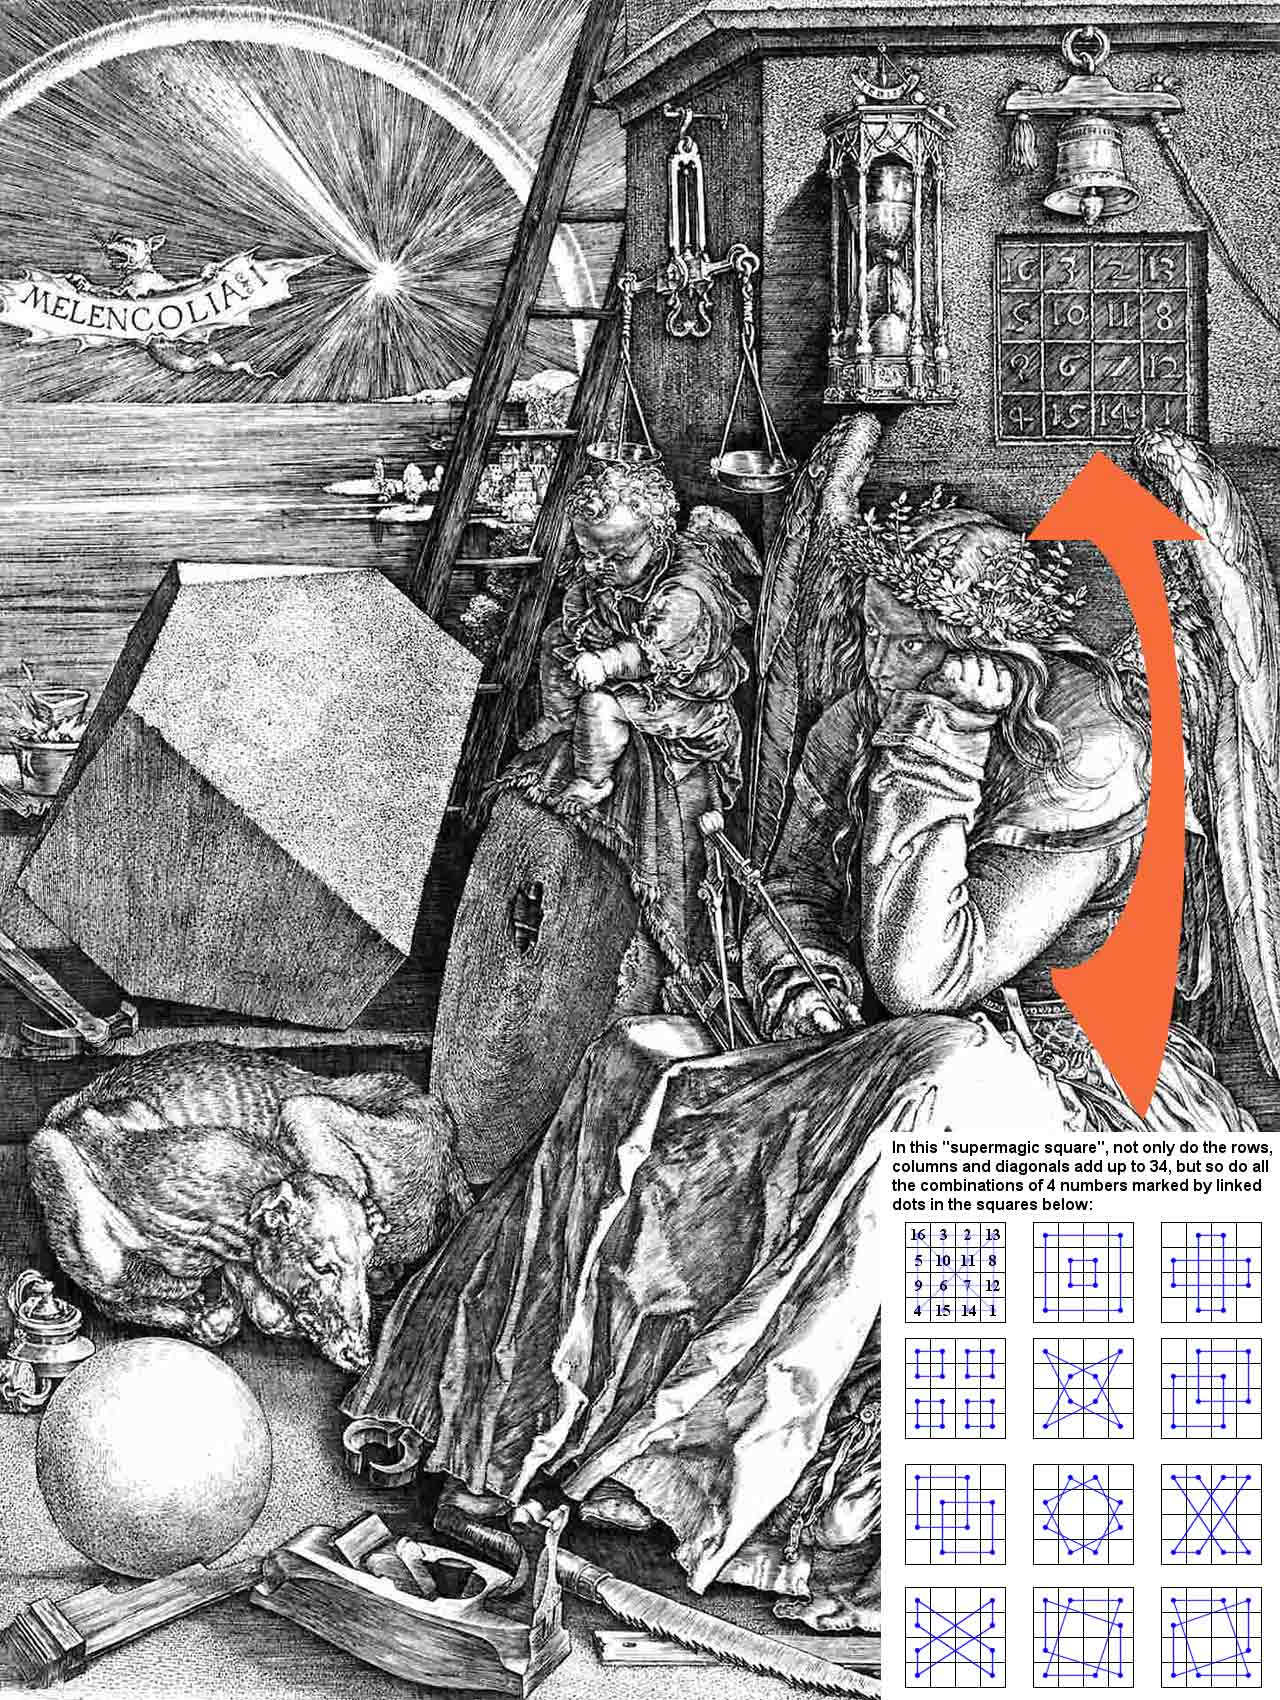 Dürer engraving with inset diagram of the super magic square contained in the 500-year-old engraving.